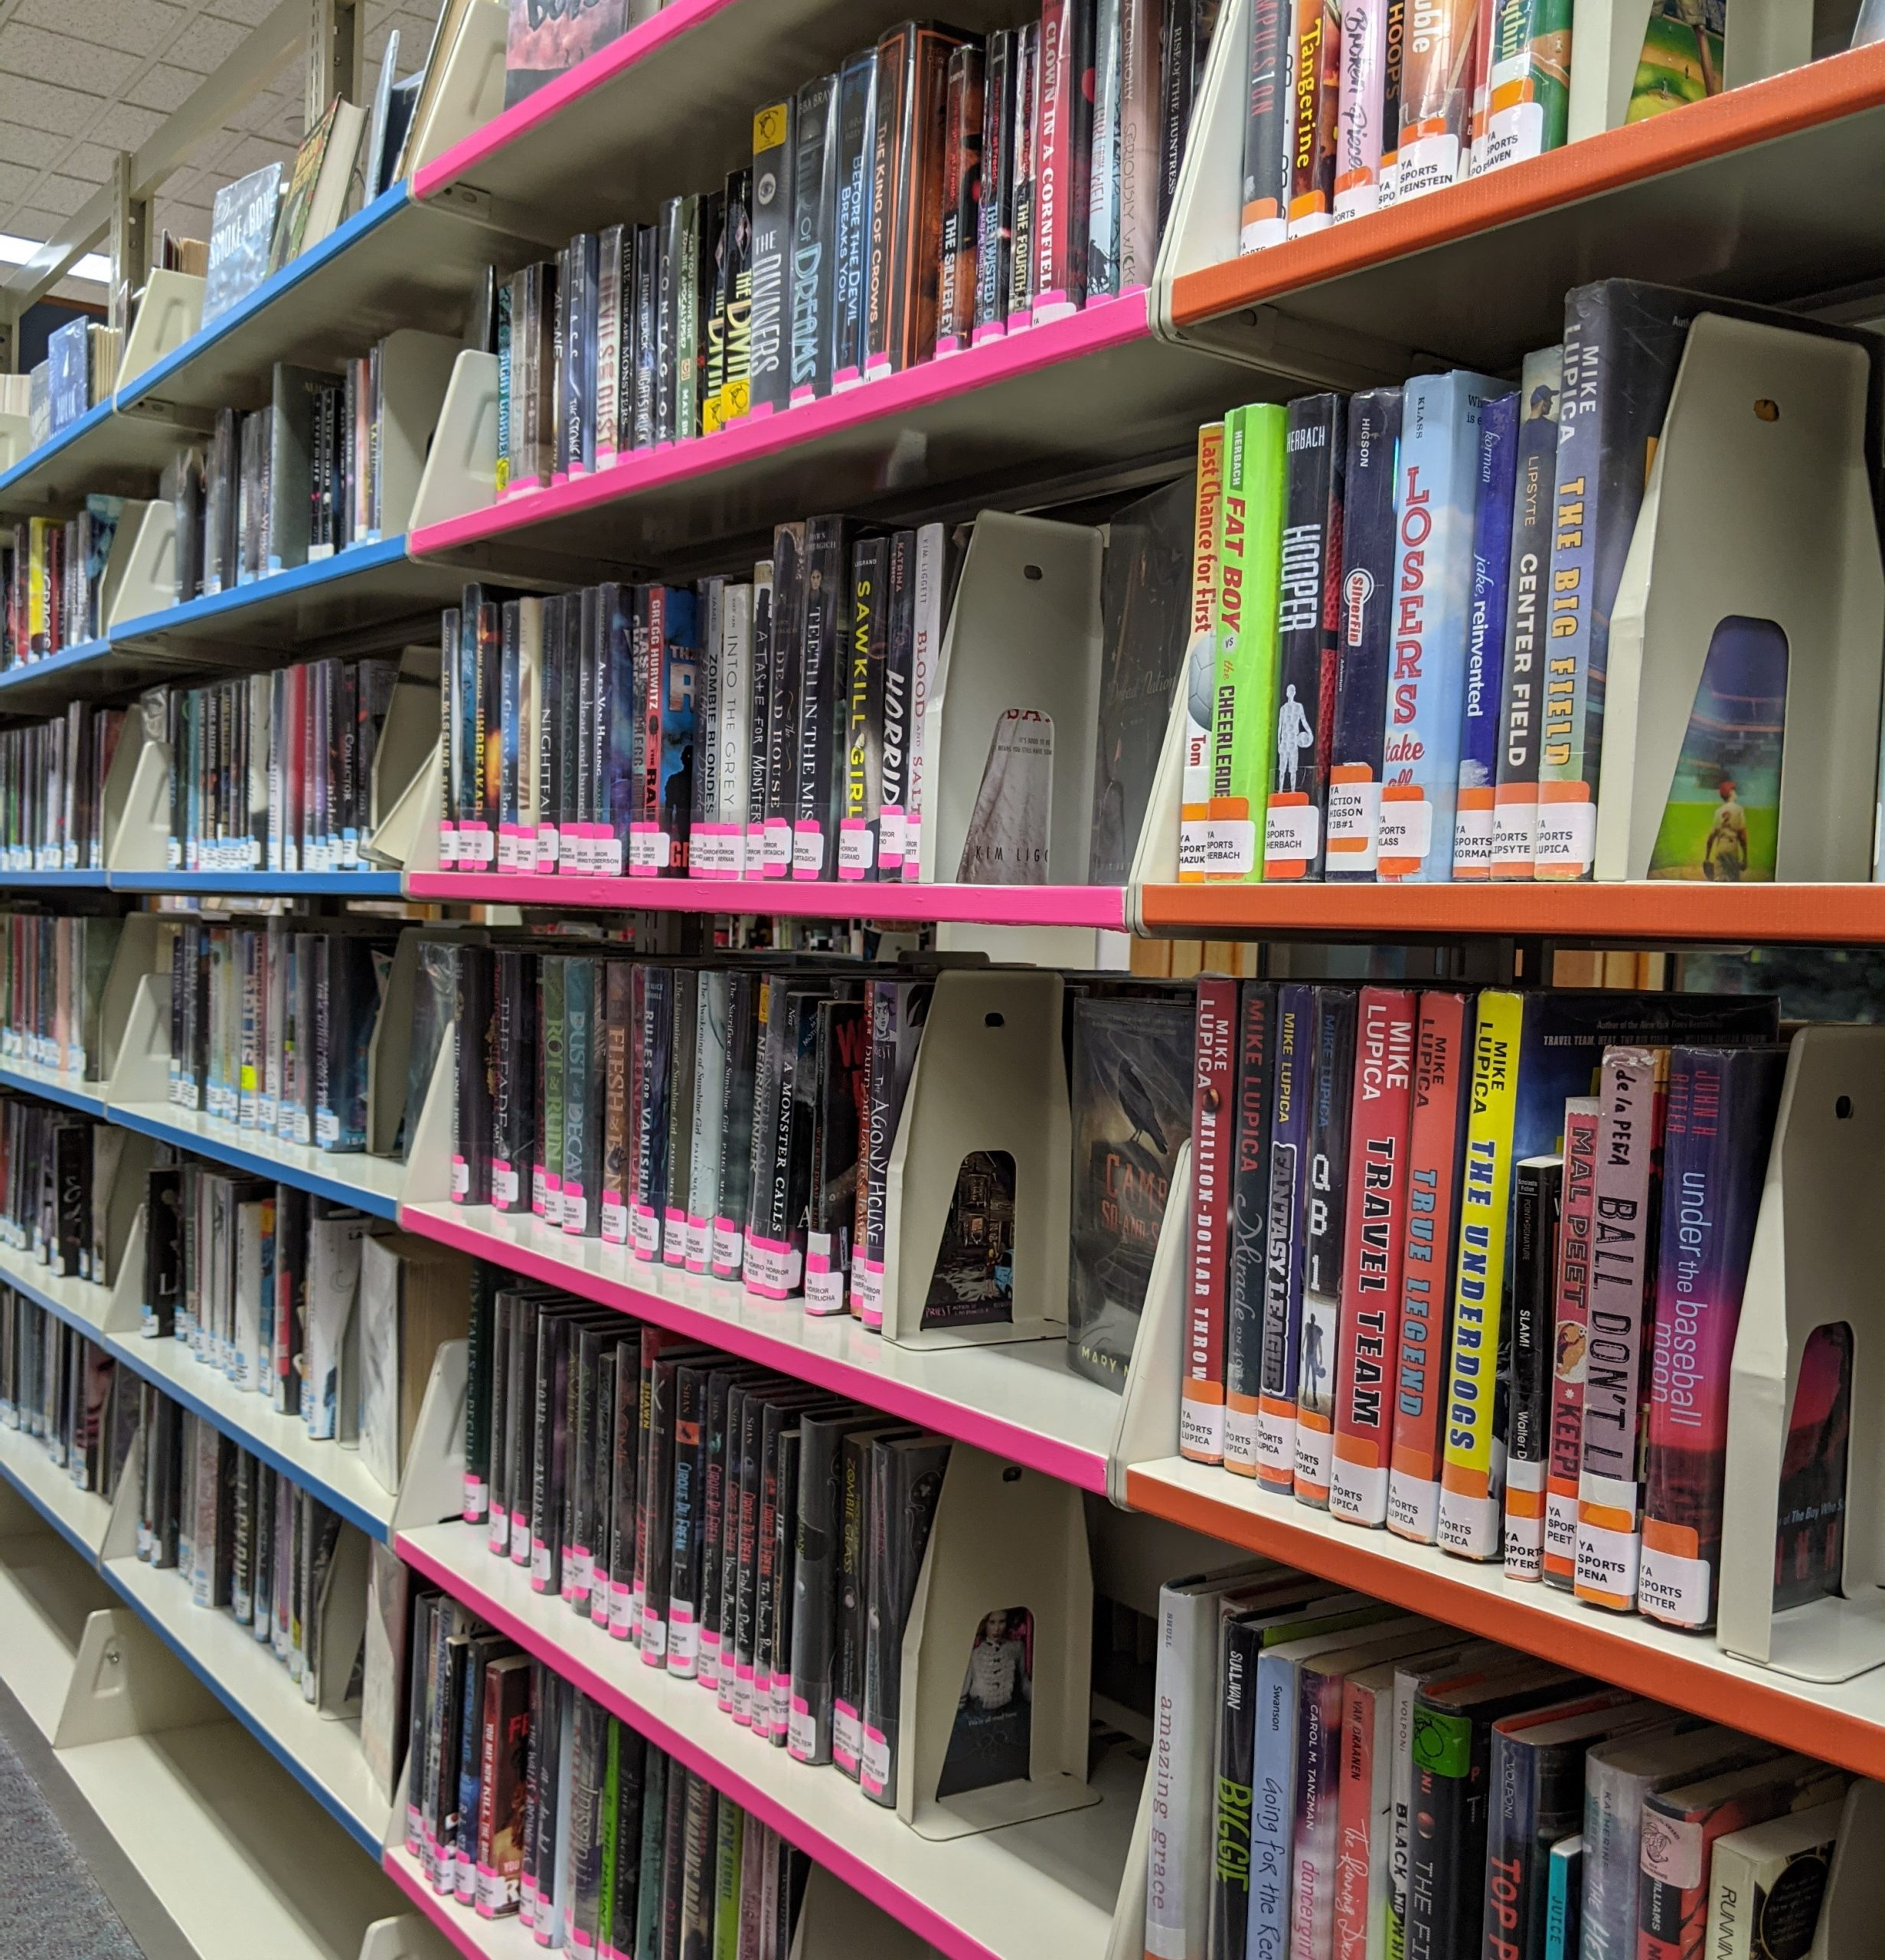 Check Out Our New Teen Section!